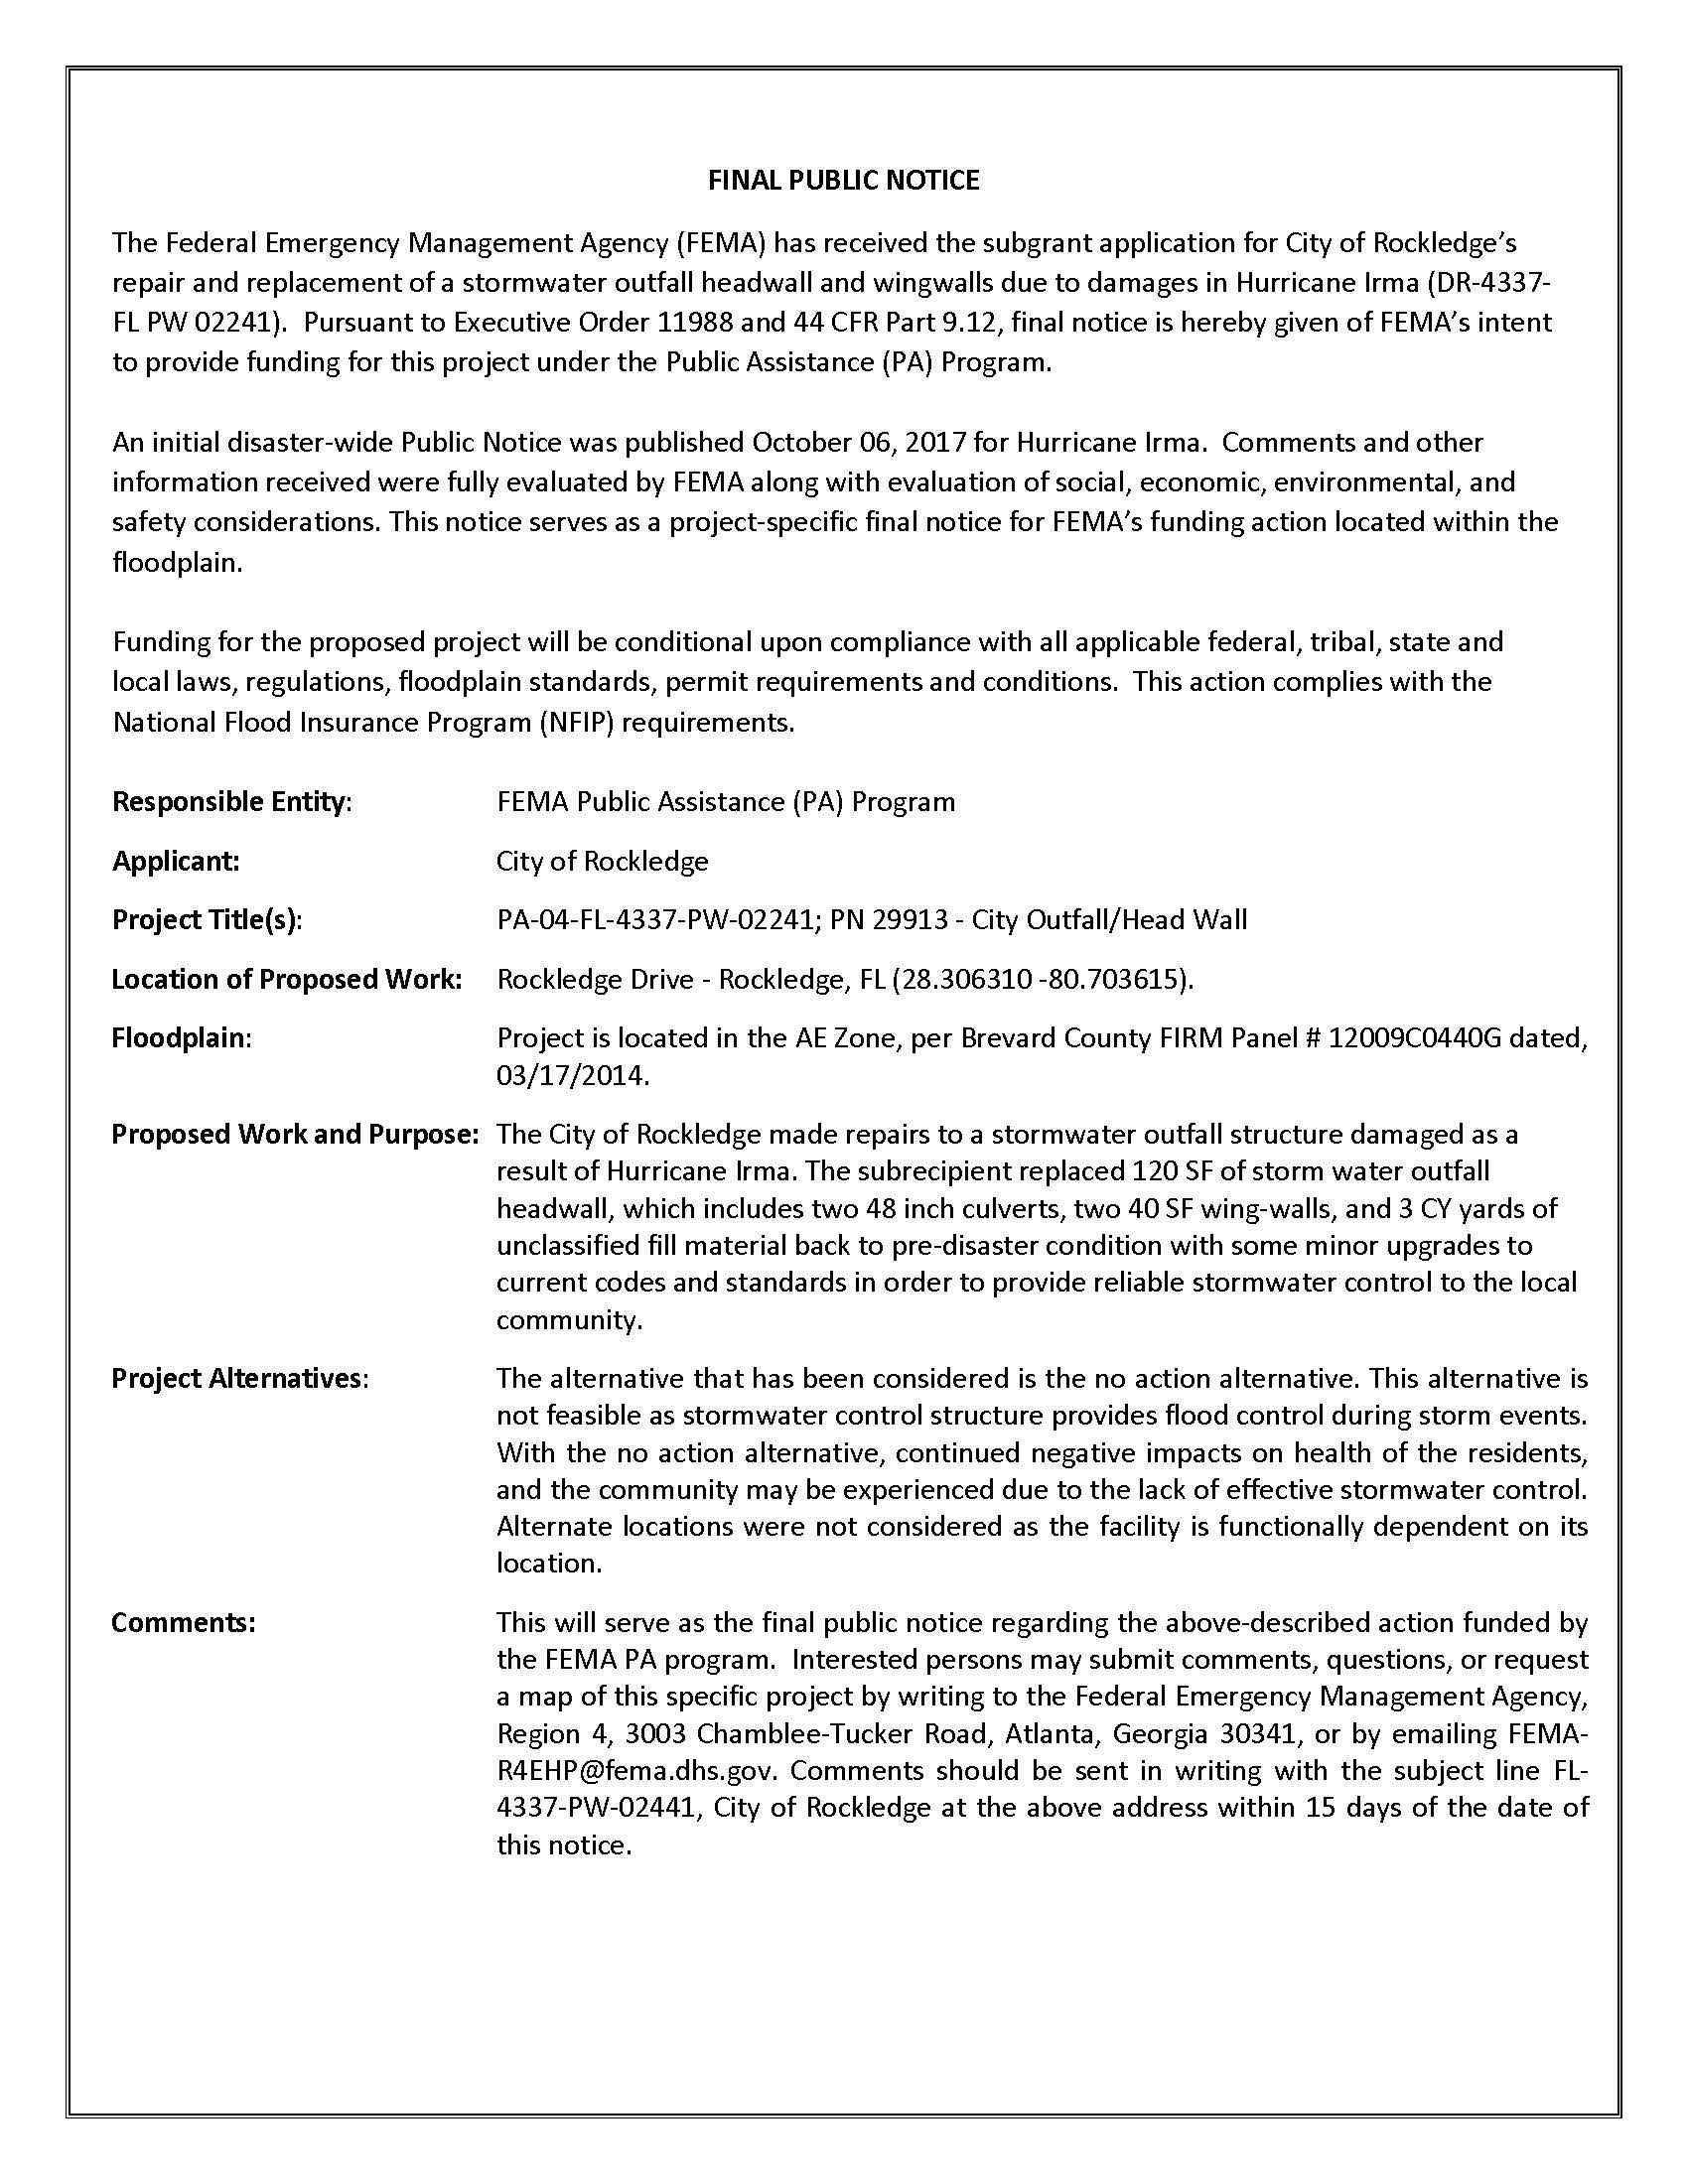 Final Public Notice - Master Outfall Headwall